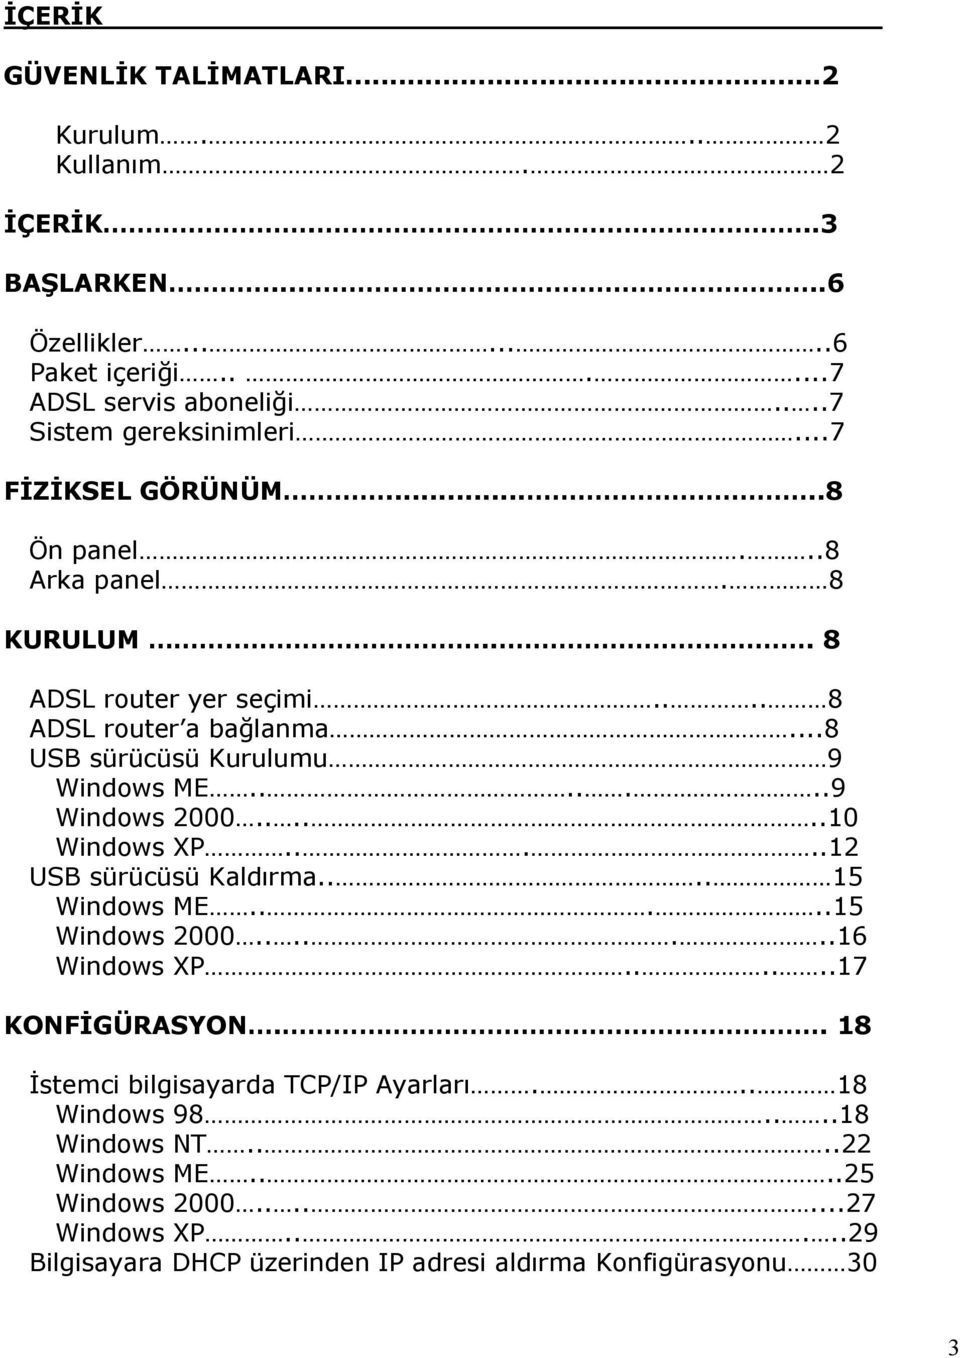 ......9 Windows 2000......10 Windows XP.....12 USB sürücüsü Kaldırma.... 15 Windows ME.....15 Windows 2000.......16 Windows XP......17 KONFİGÜRASYON.